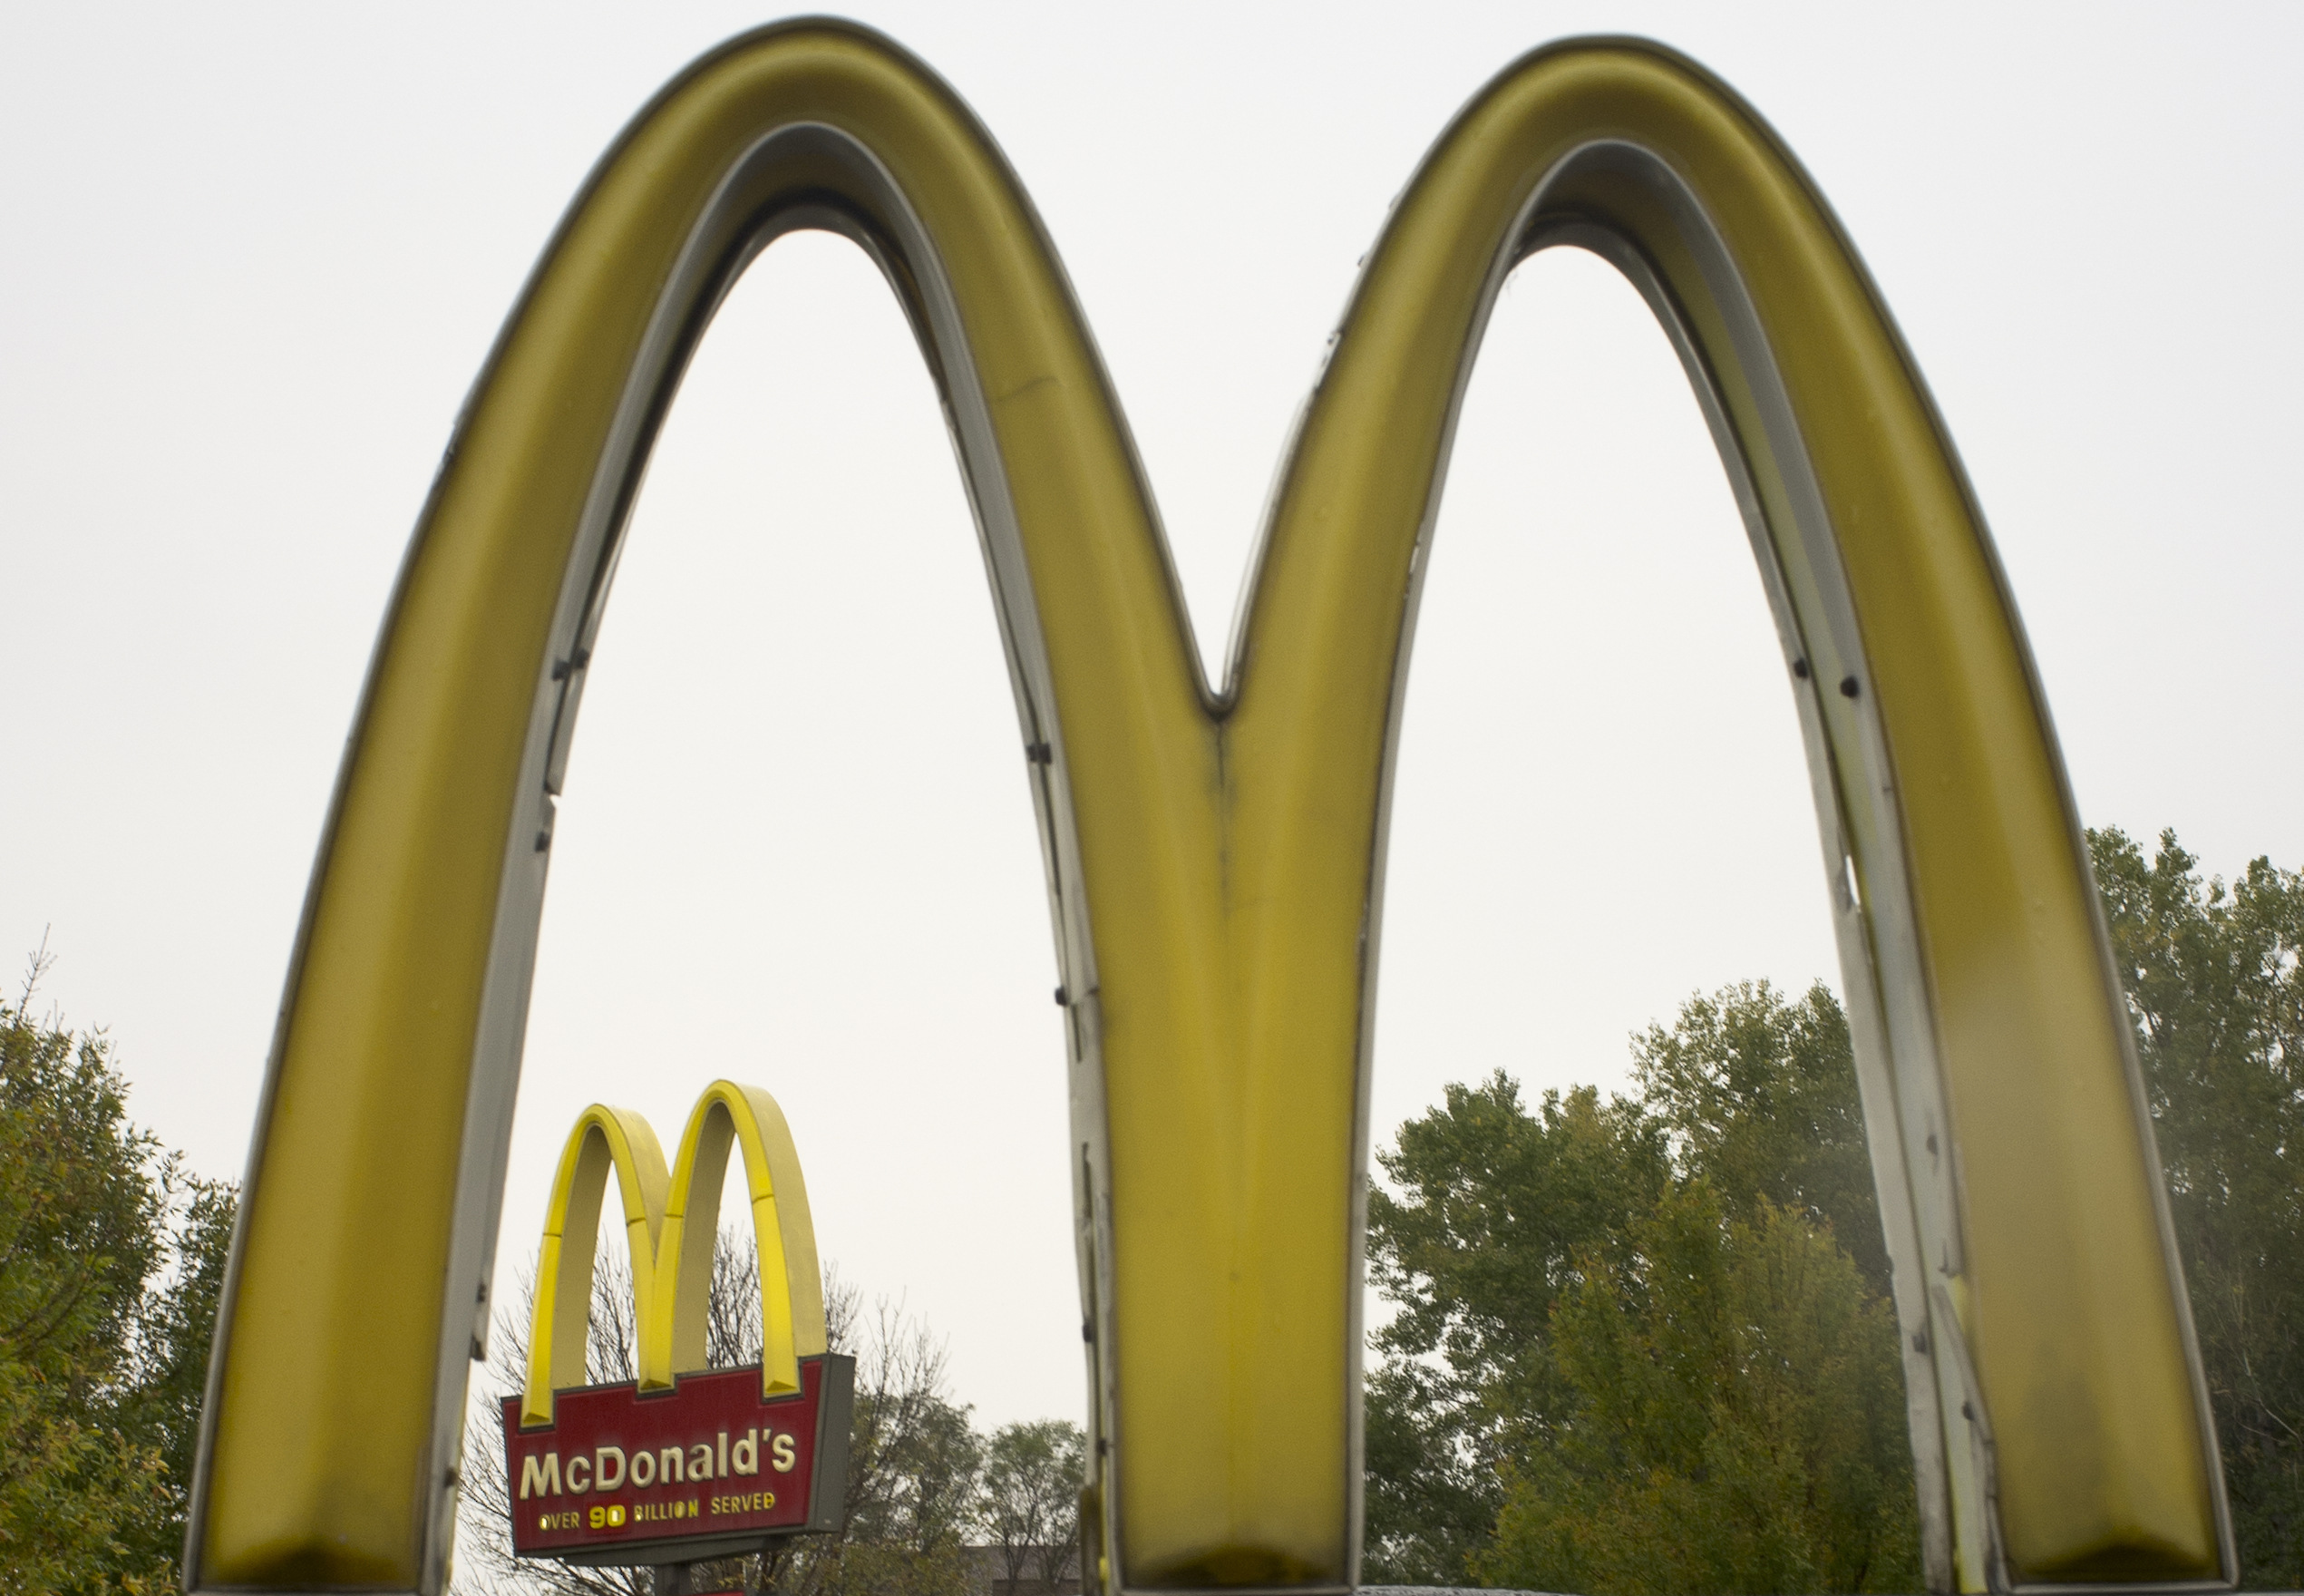 FILE - This Oct. 21, 2011 file photo shows the golden arches of McDonalds, in Omaha, Neb.,  McDonald's has ended its Olympic sponsorship deal three years early. The International Olympic Committee says confidential financial terms of the immediate separat